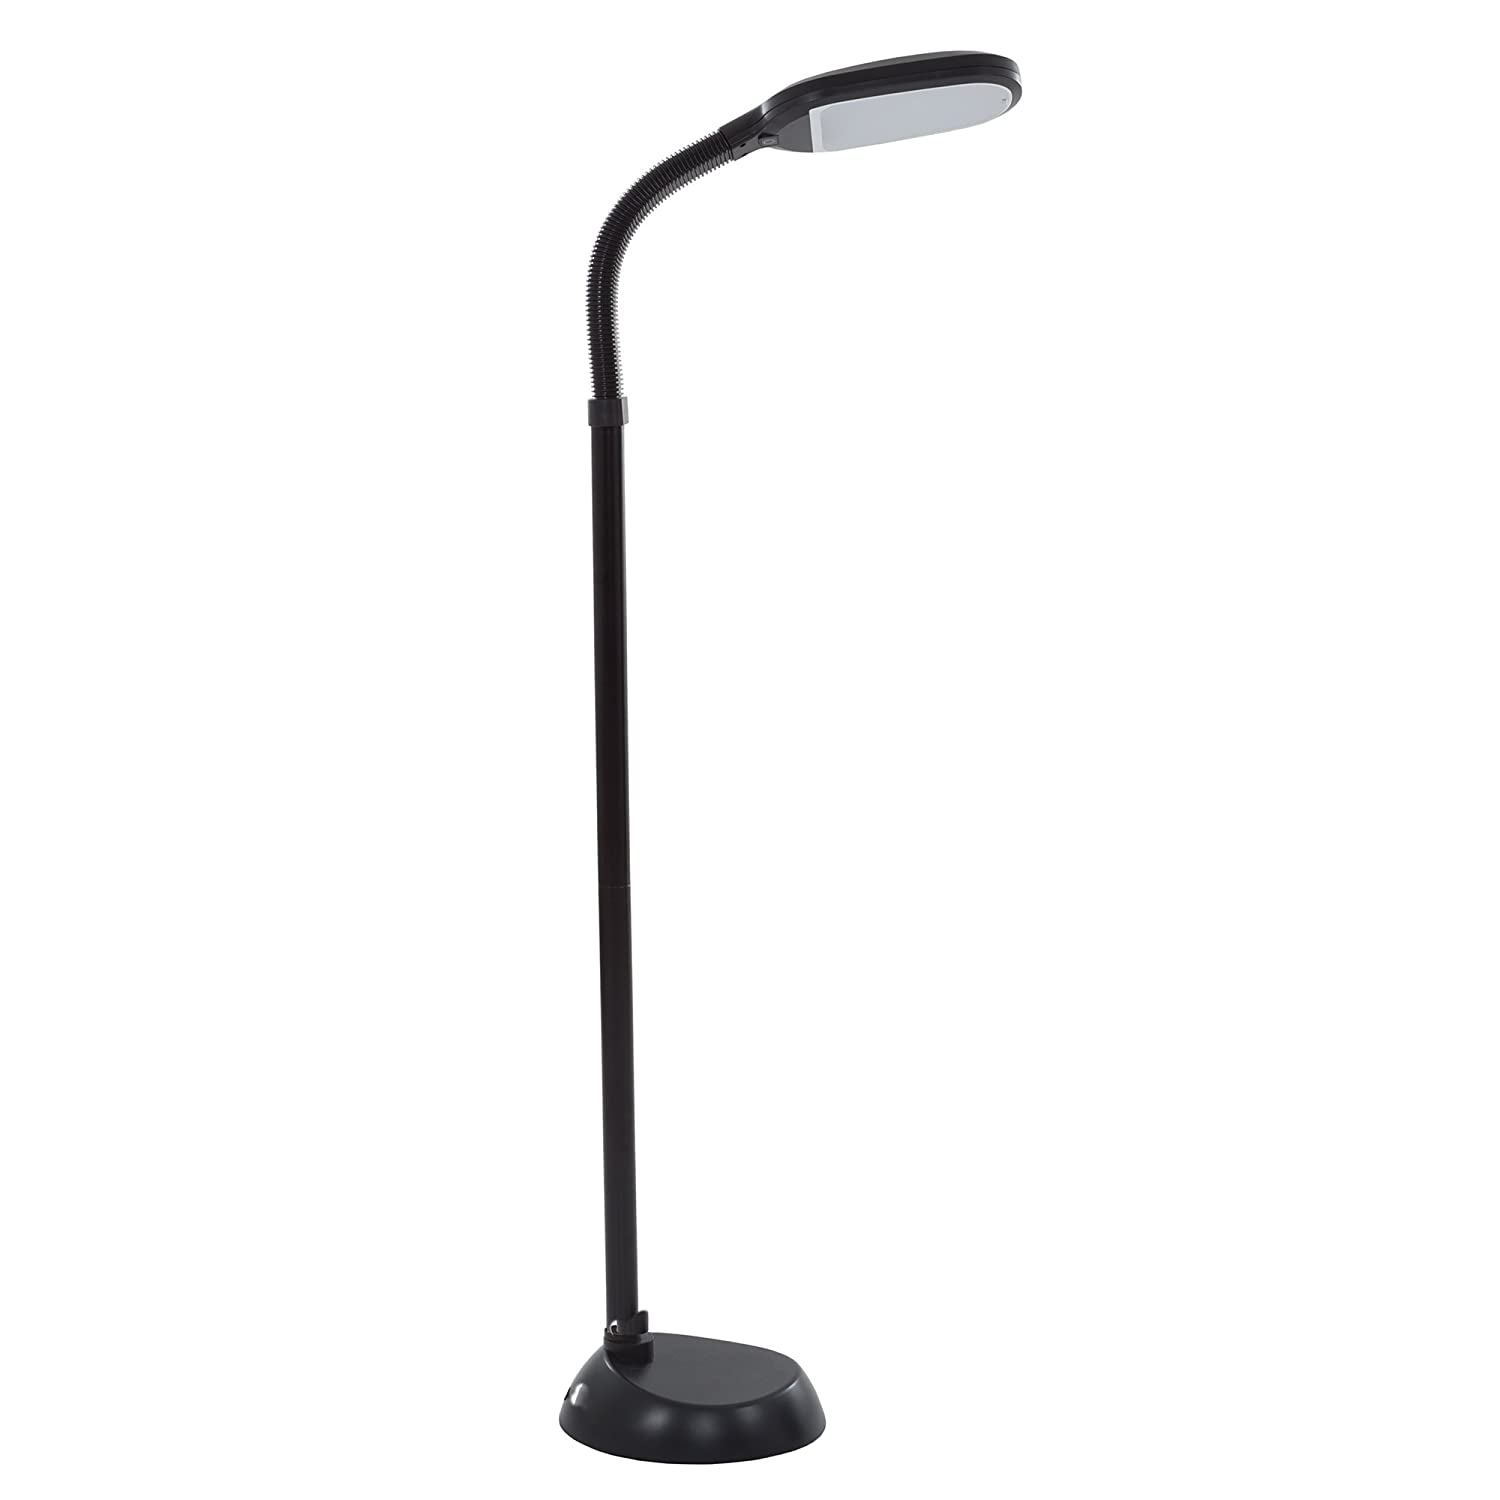 Lavish Home (72-1515) 5 Feet Sunlight Floor Lamp With Adjustable Gooseneck - Dimmer Black